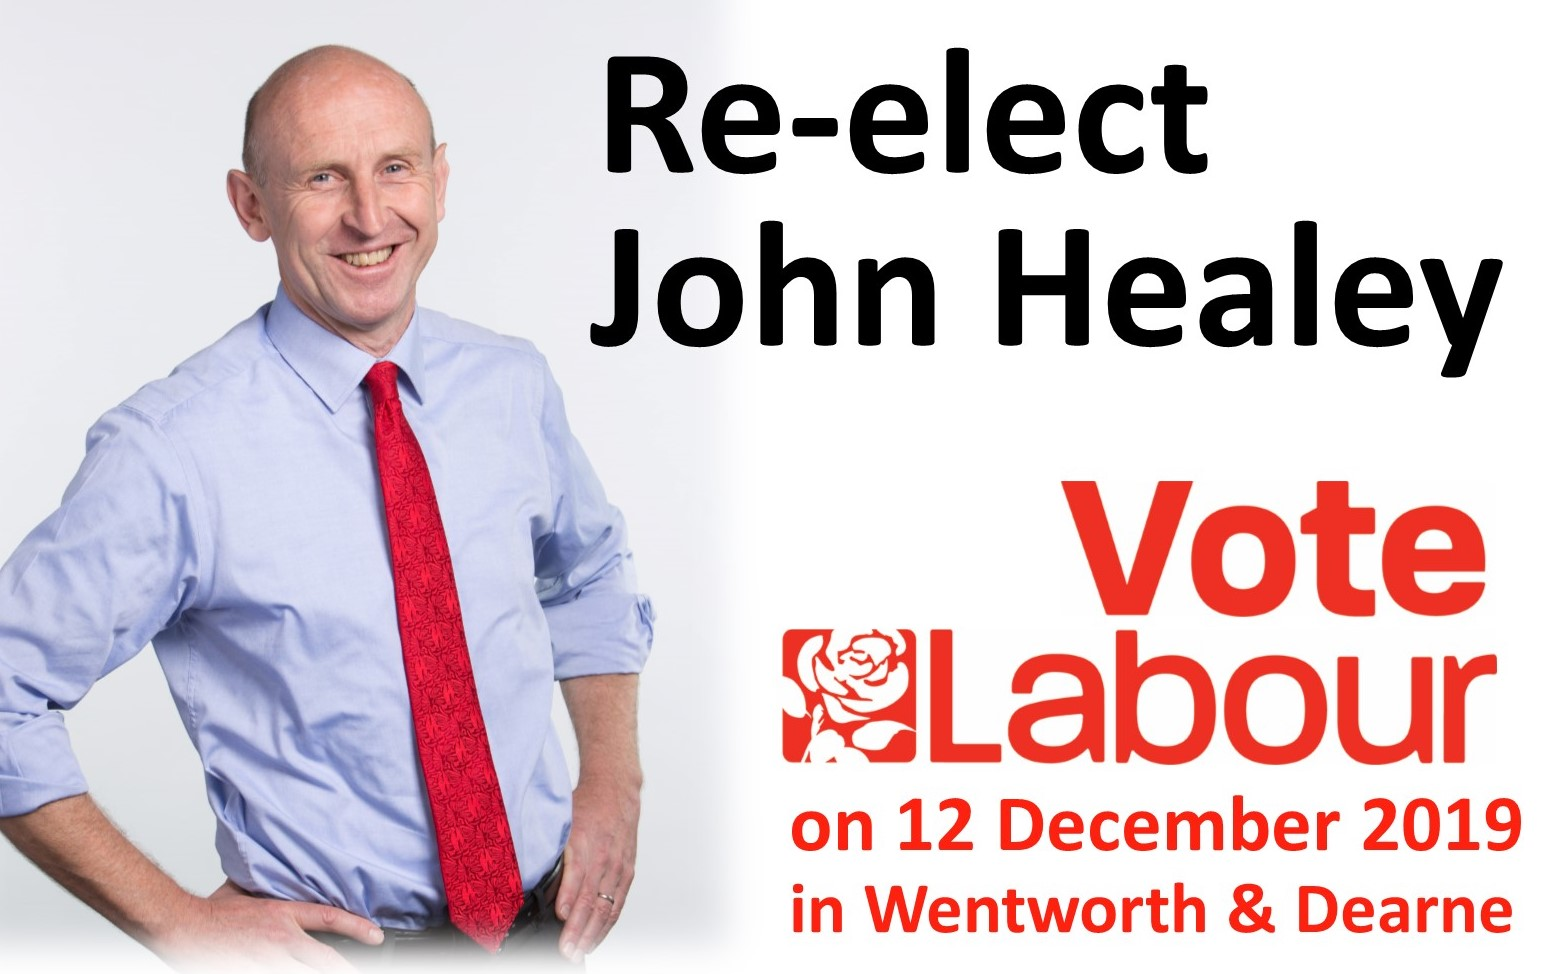 Re-elect John Healey as MP for Wentworth and Dearne in 2019